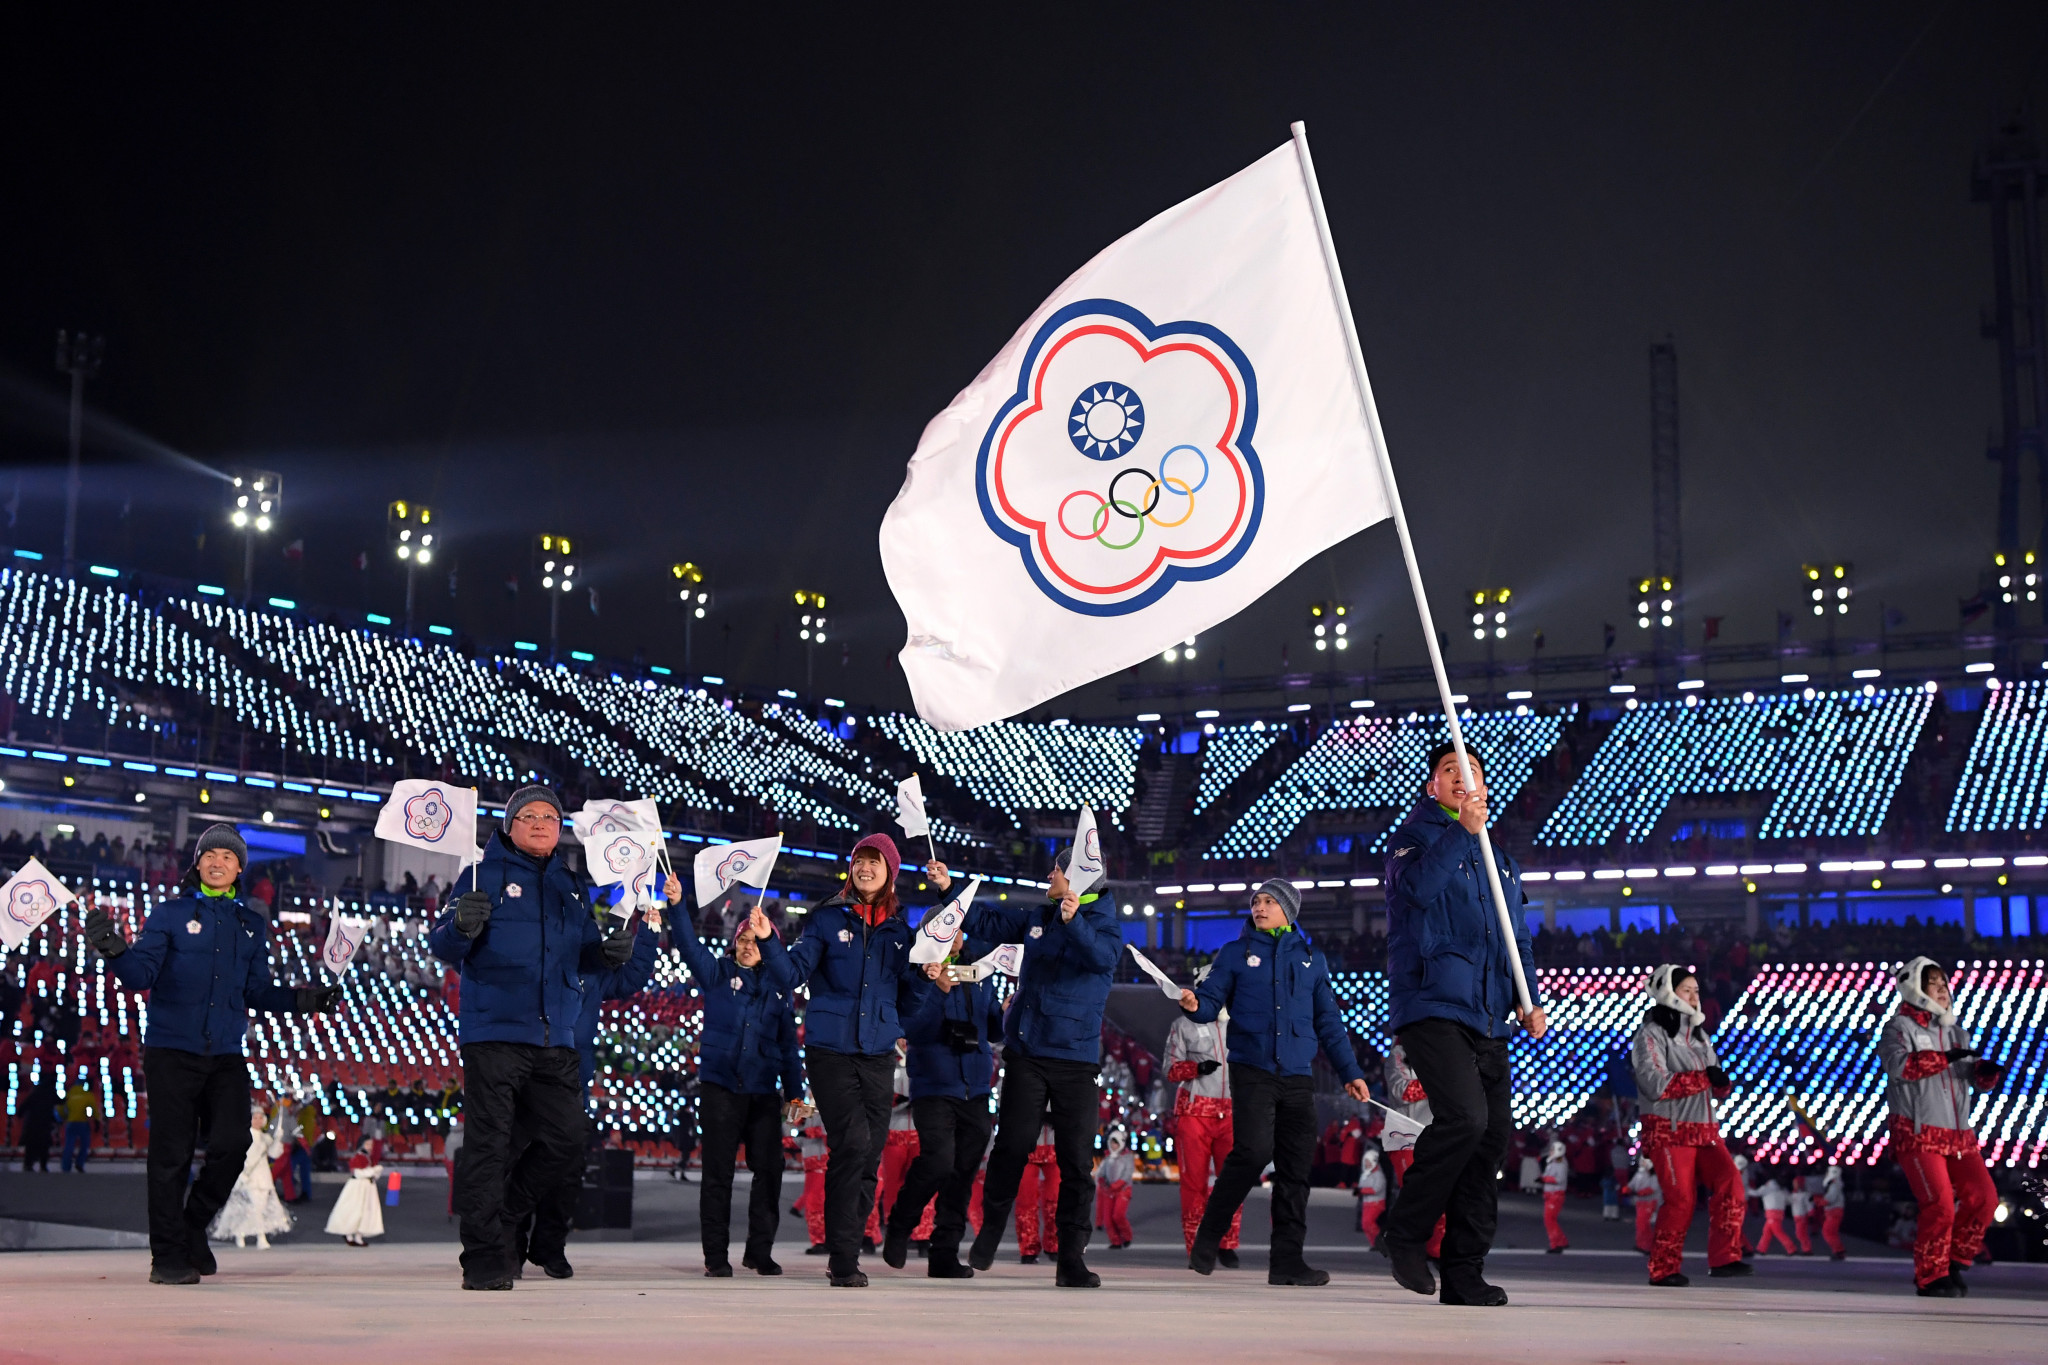 Taiwanese athletes will compete under the Chinese Taipei flag at Tokyo 2020 ©Getty Images